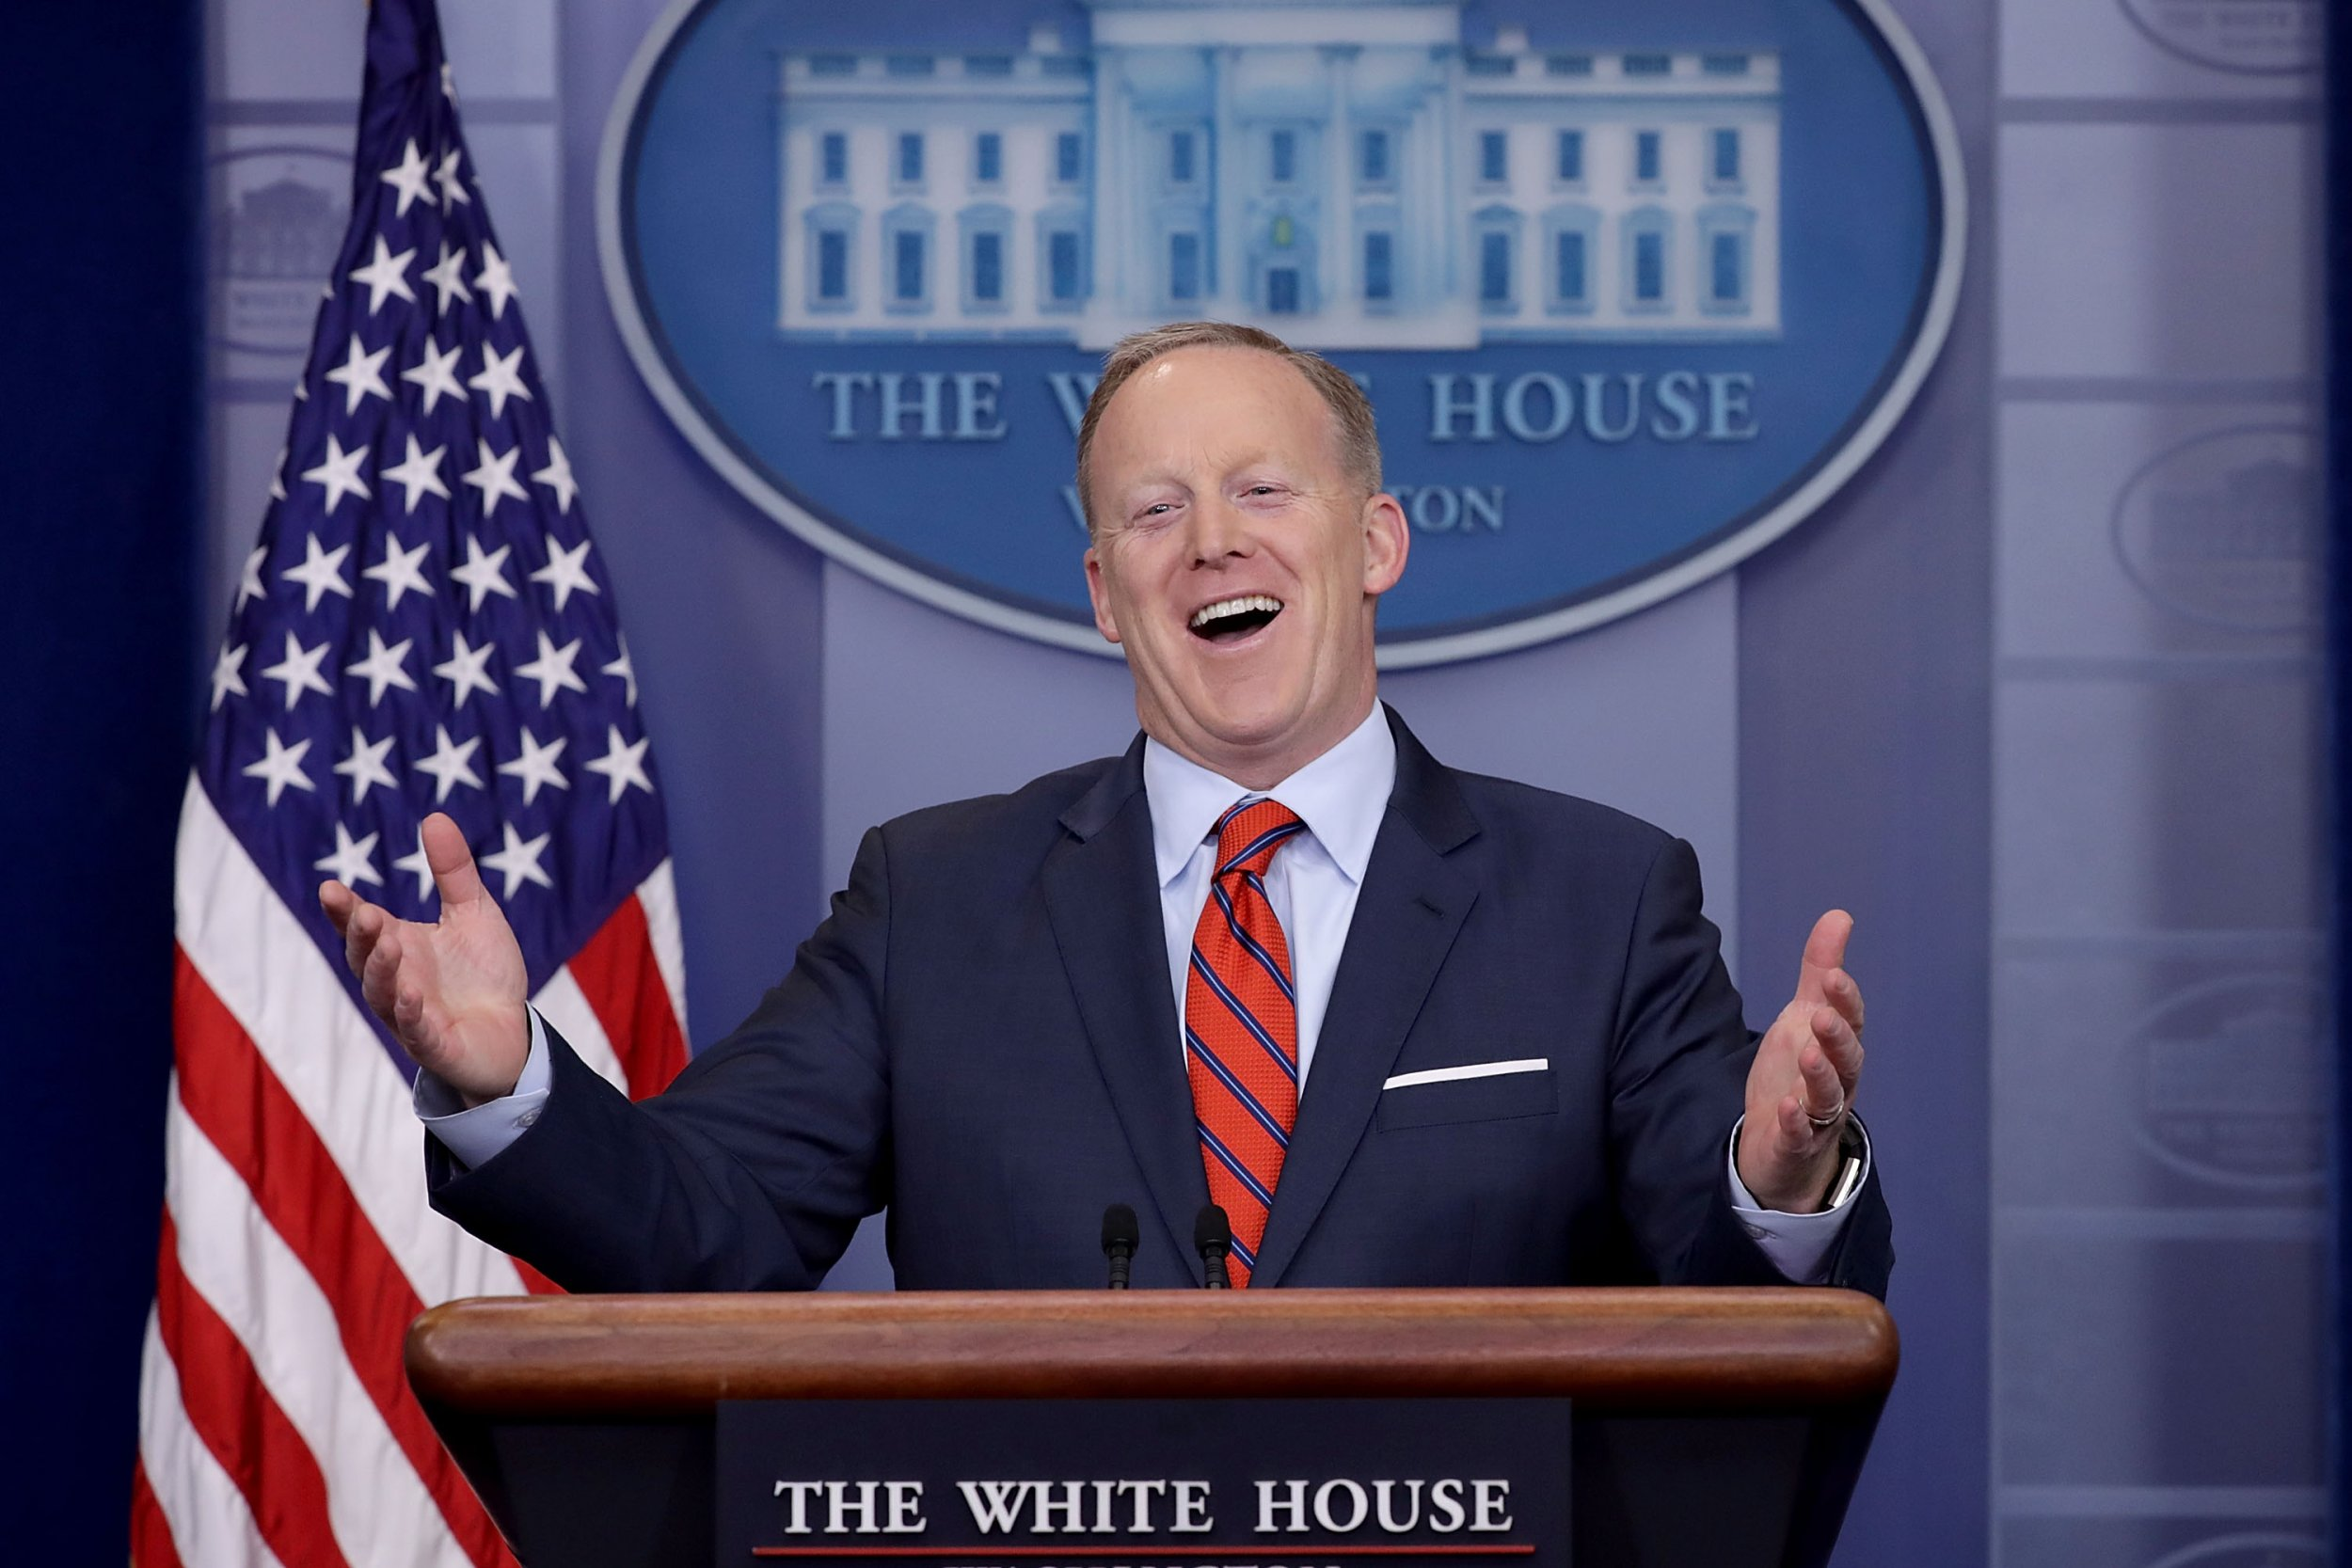 sean spicer to return to white house press briefings, but you